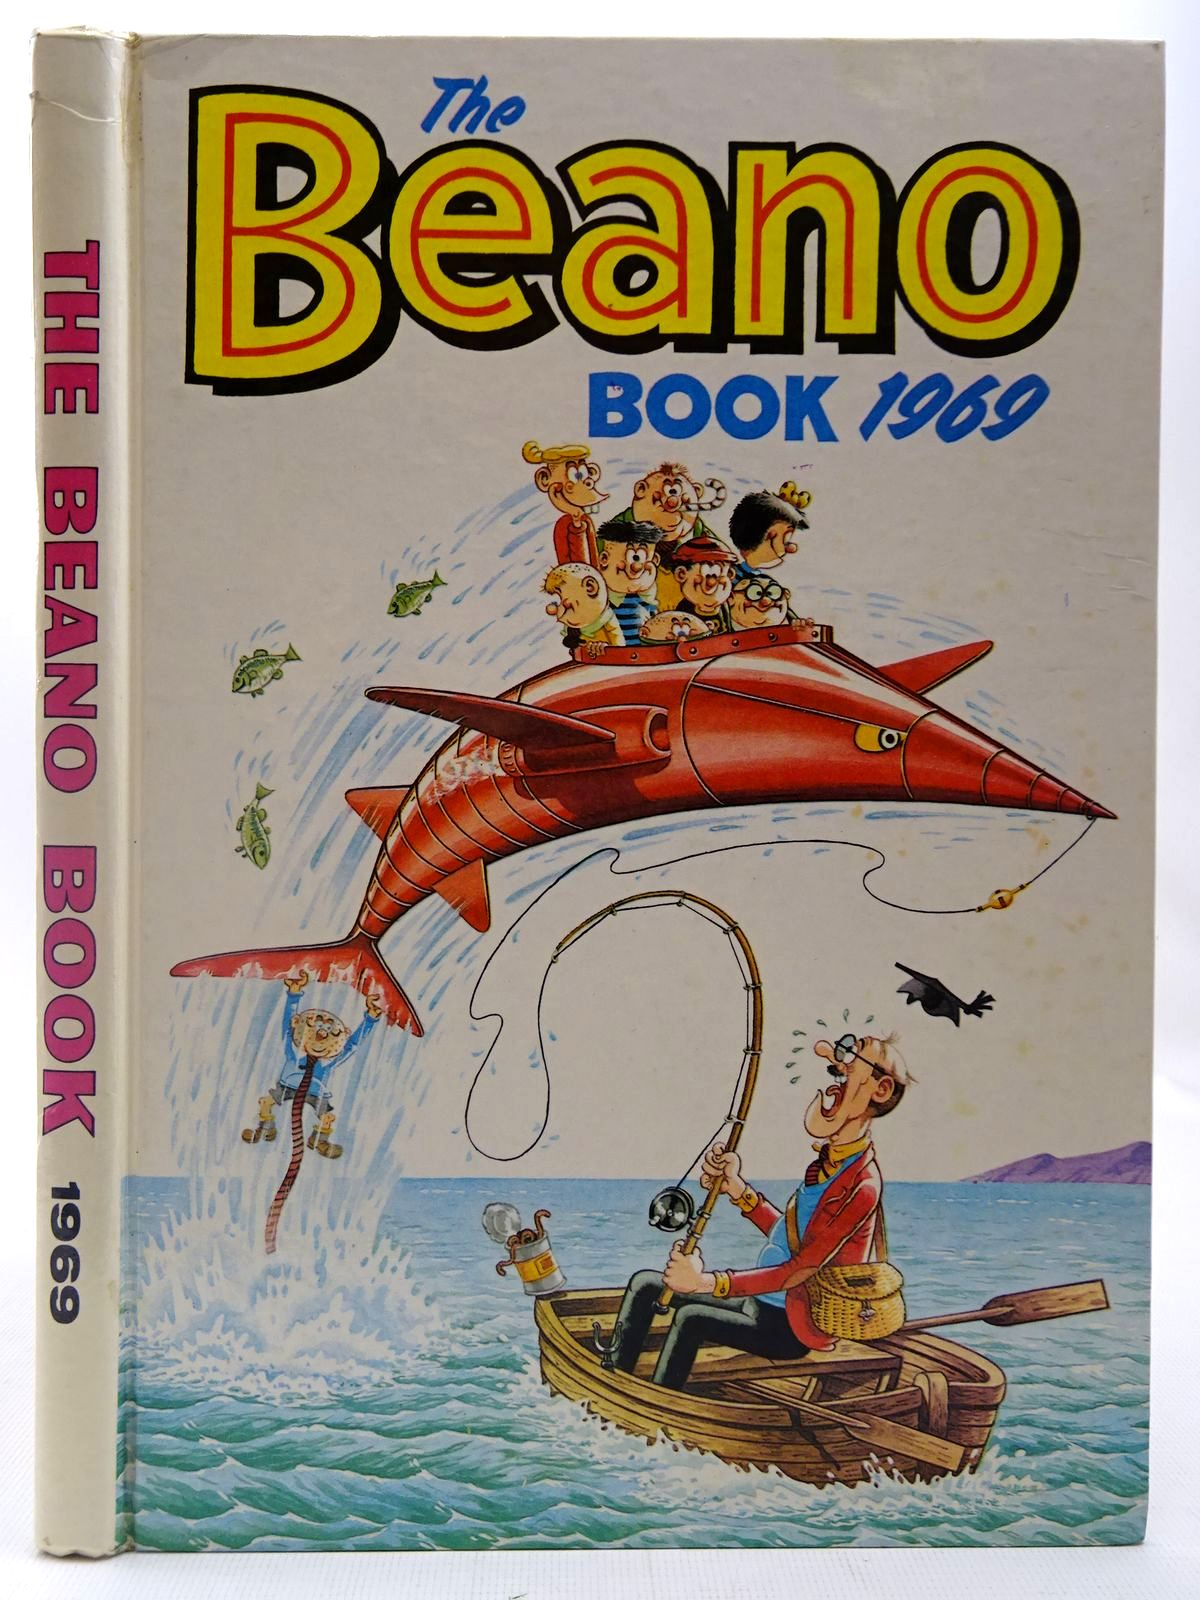 Photo of THE BEANO BOOK 1969 published by D.C. Thomson & Co Ltd. (STOCK CODE: 2127138)  for sale by Stella & Rose's Books